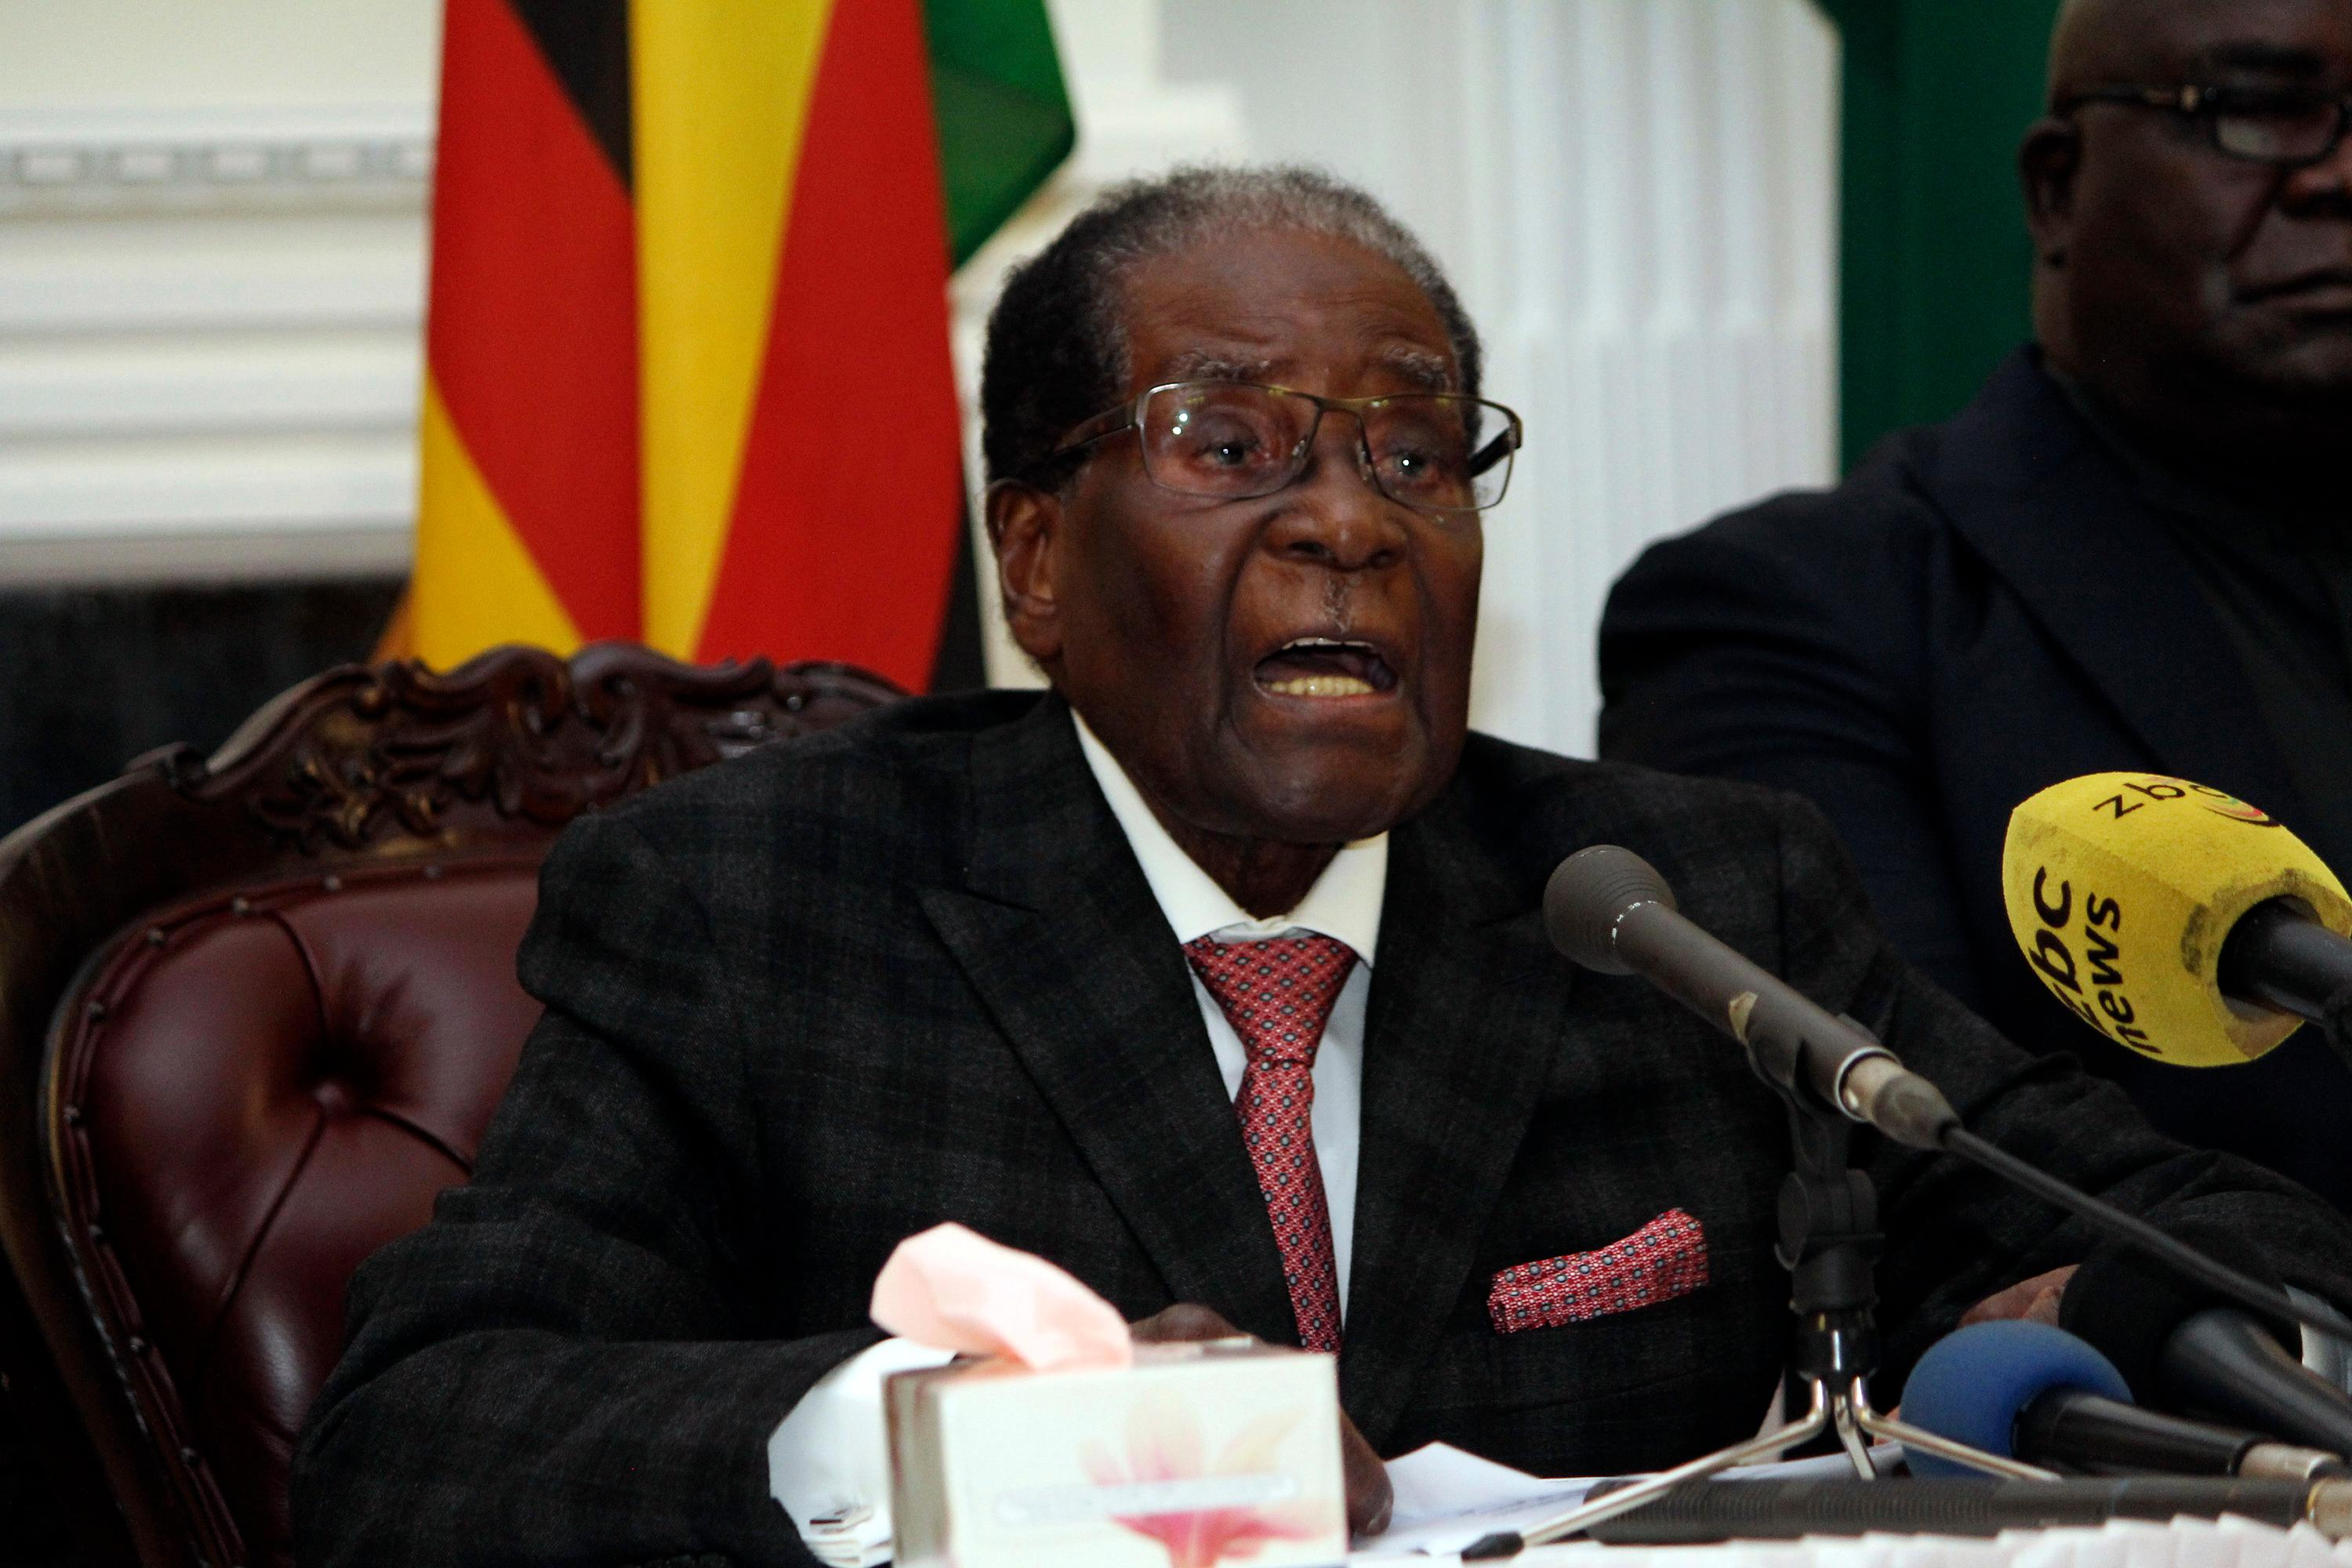 Zimbabwean President Robert Mugabe delivers his speech during a live broadcast at State House in Harare, Sunday, Nov, 19, 2017. (AP Photo)<p></p>